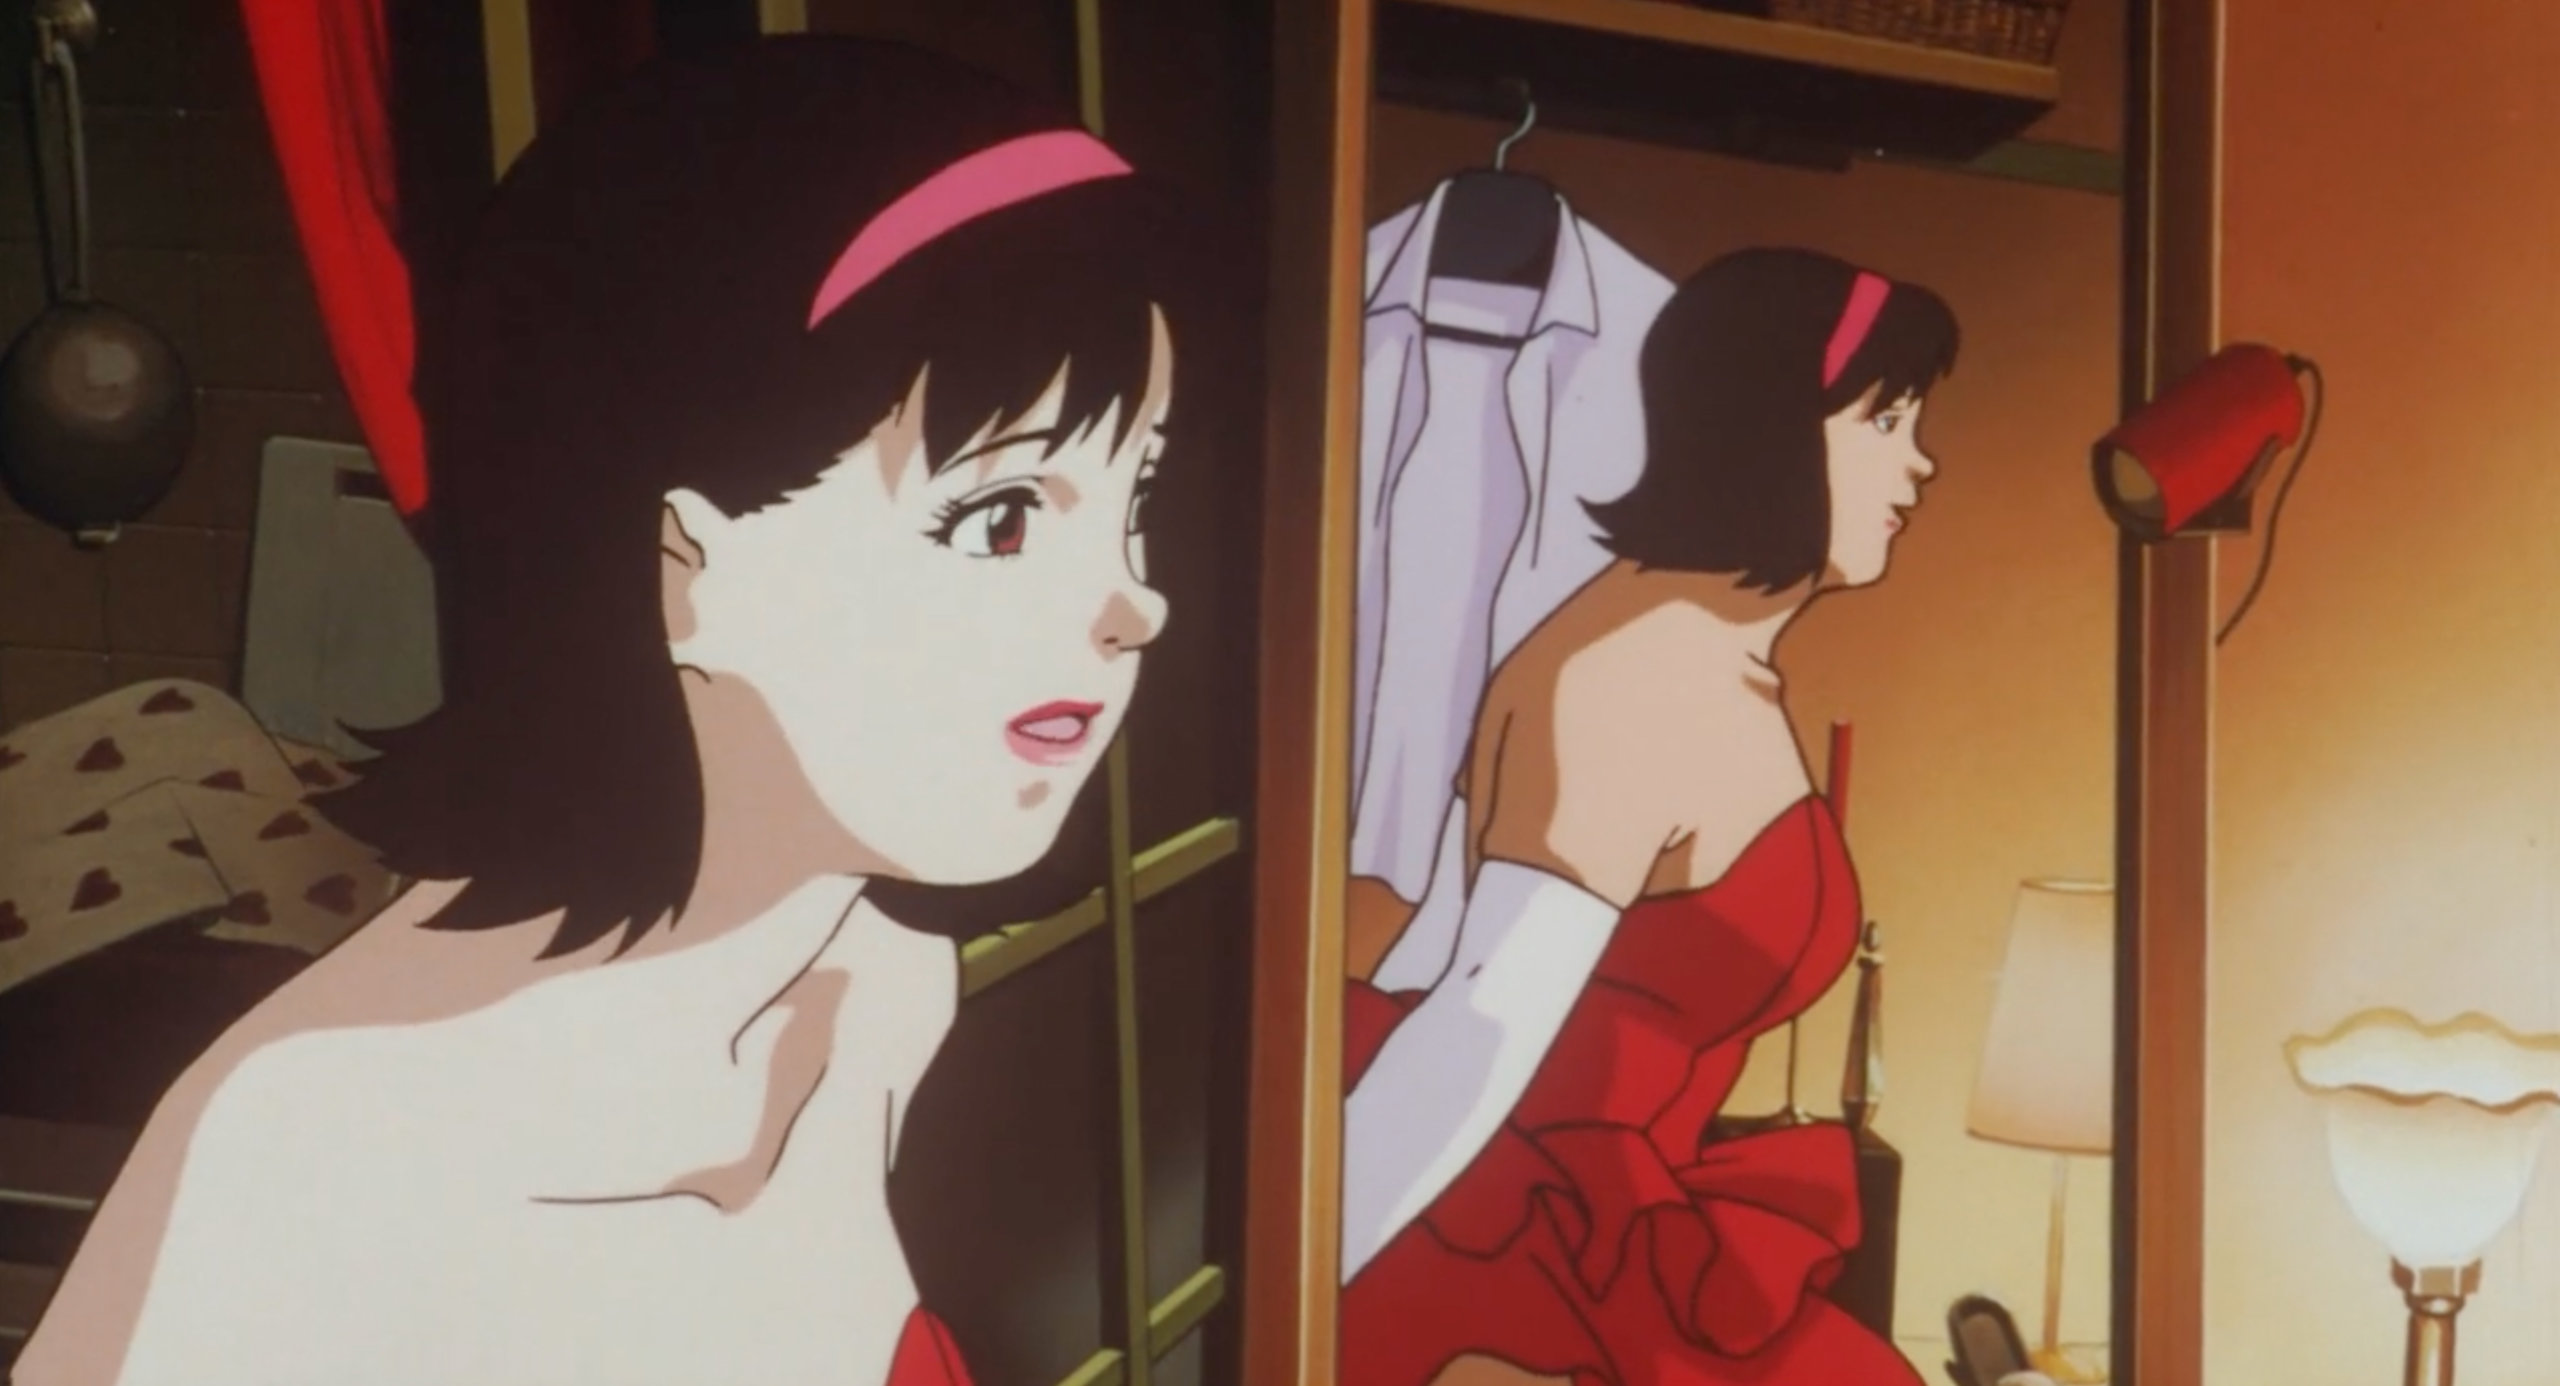 Rumi appears in the mirror pretending to be Mima in Perfect Blue